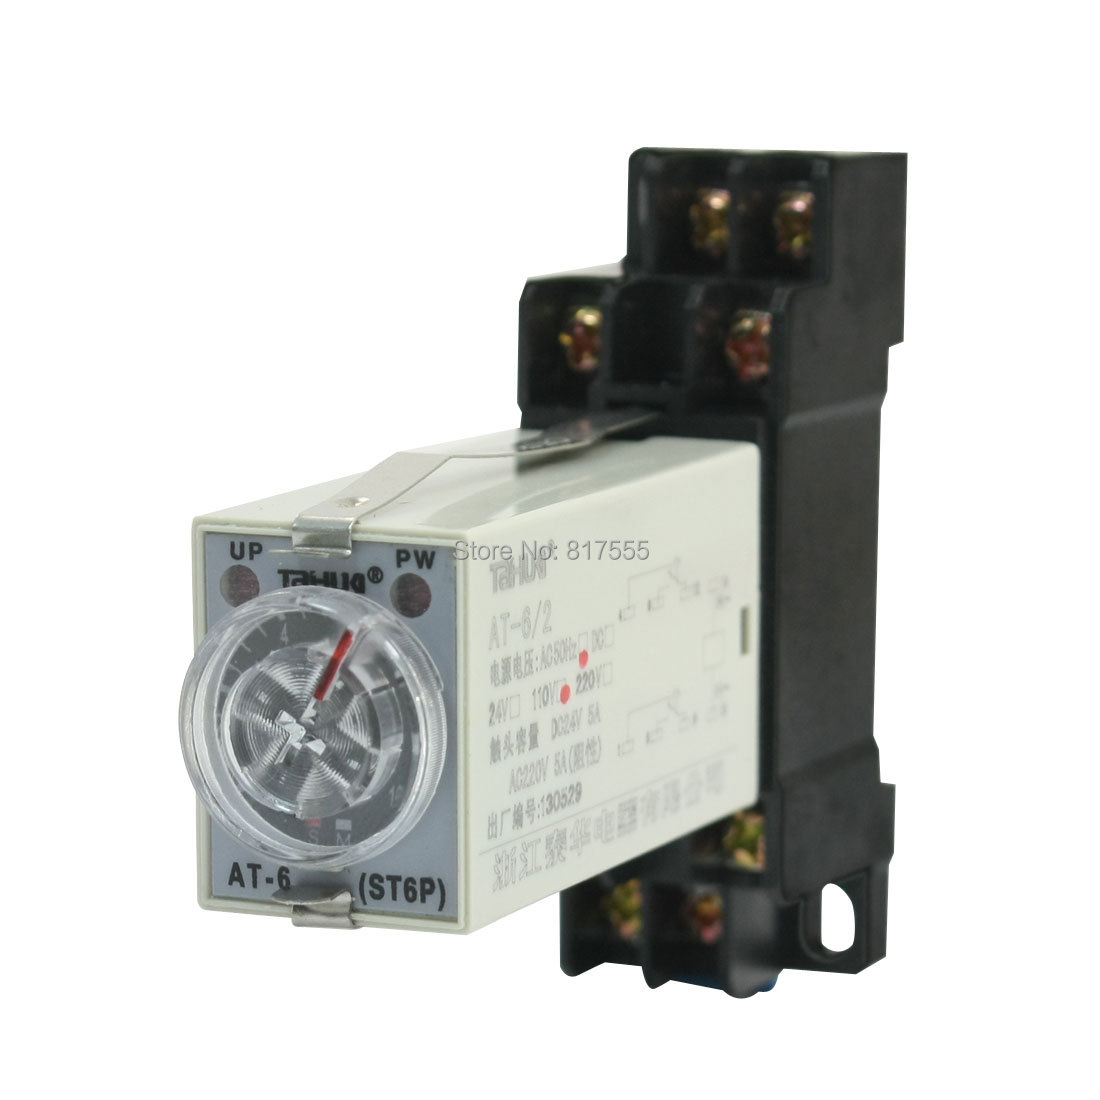 Panel Mounted AC 110V 5A 8Pin DPDT 10s Power on Time Delay Timer Relay Discount 50 panel mounted dpdt 8p 10min 0 10m timing time relay ac 220v w led indicator